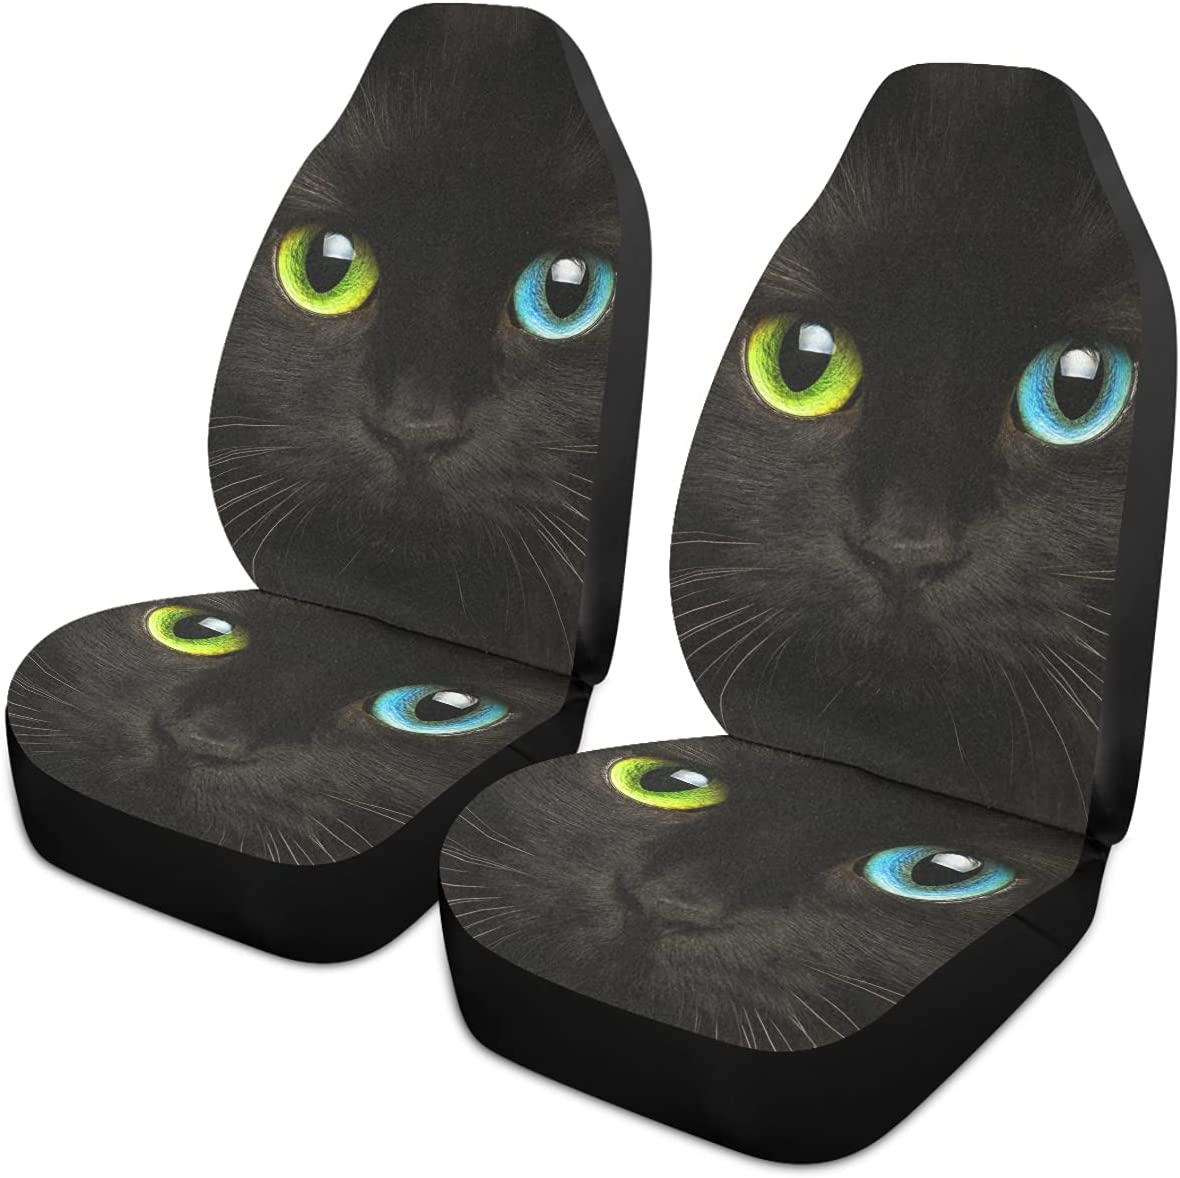 Oarencol famous Cute Black Cat Car Seat Eyes Univers Yellow Cheap SALE Start Covers Blue